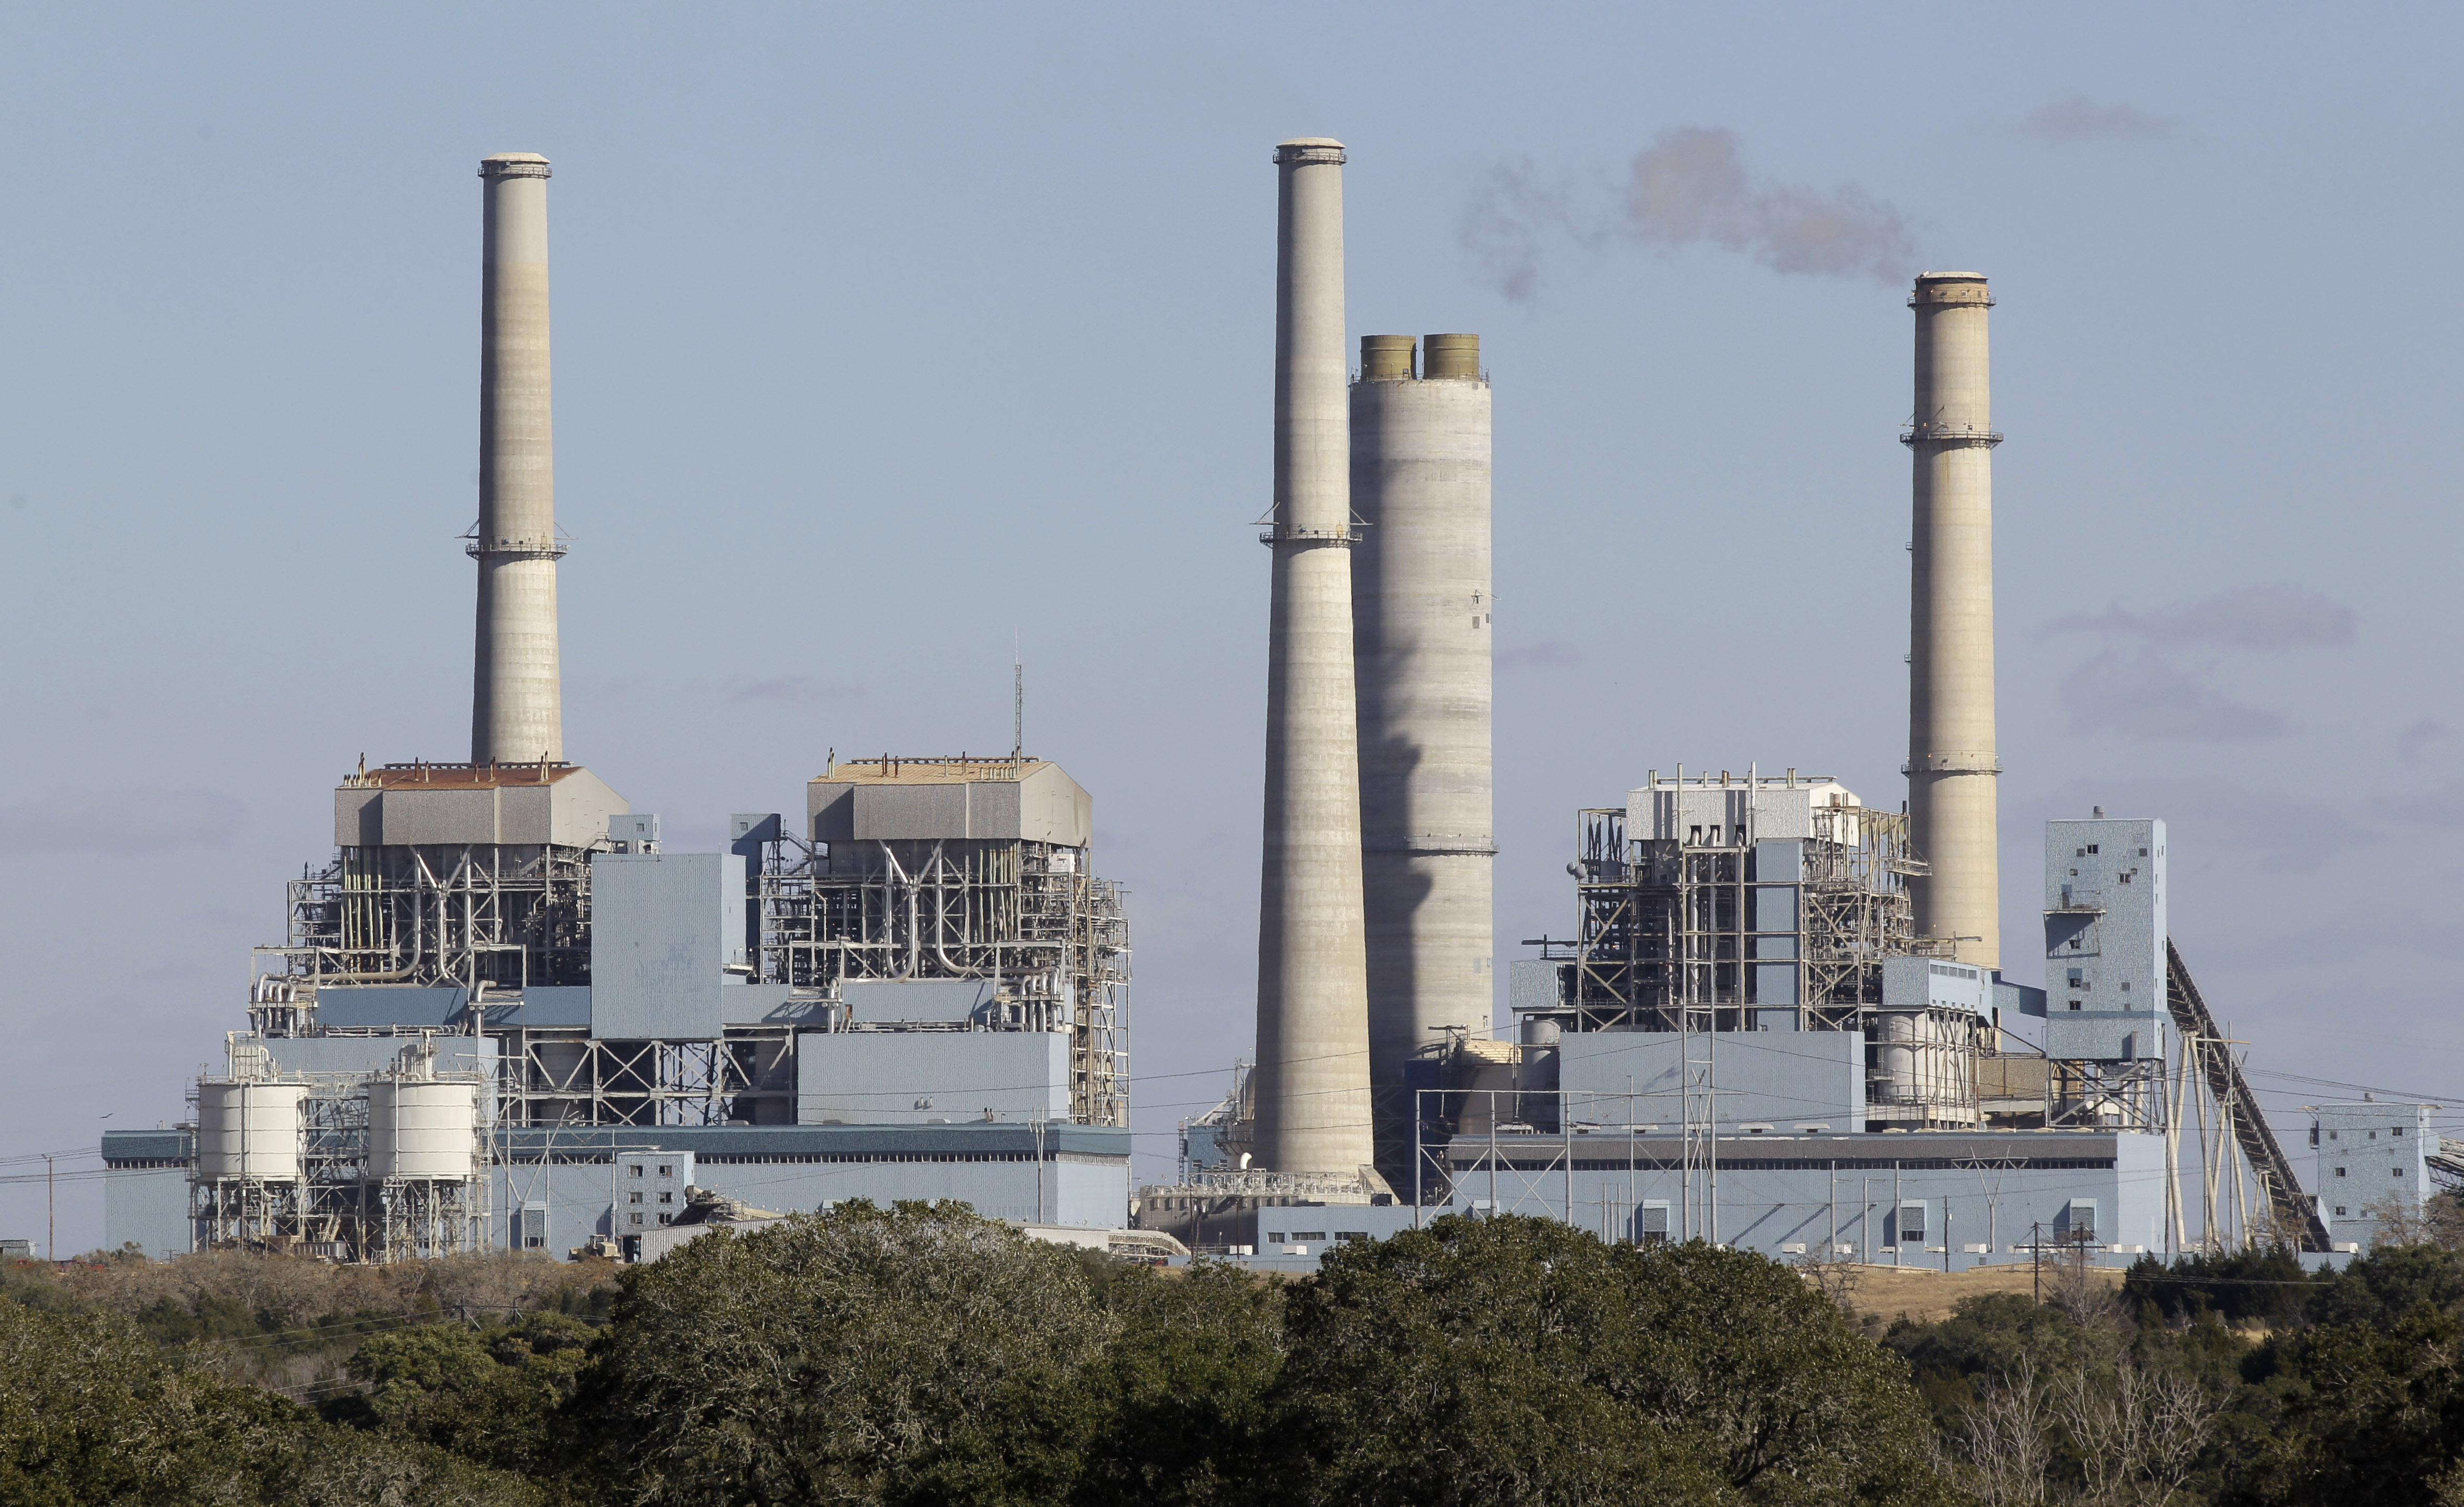 FILE- The Fayette Power Project, a coal-fired power plant, is shown in Ellinger, Texas, Dec. 15, 2010. Some environmentalists, ranchers and scientists linked tree deaths in the area to sulfur dioxide emissions from the plant.